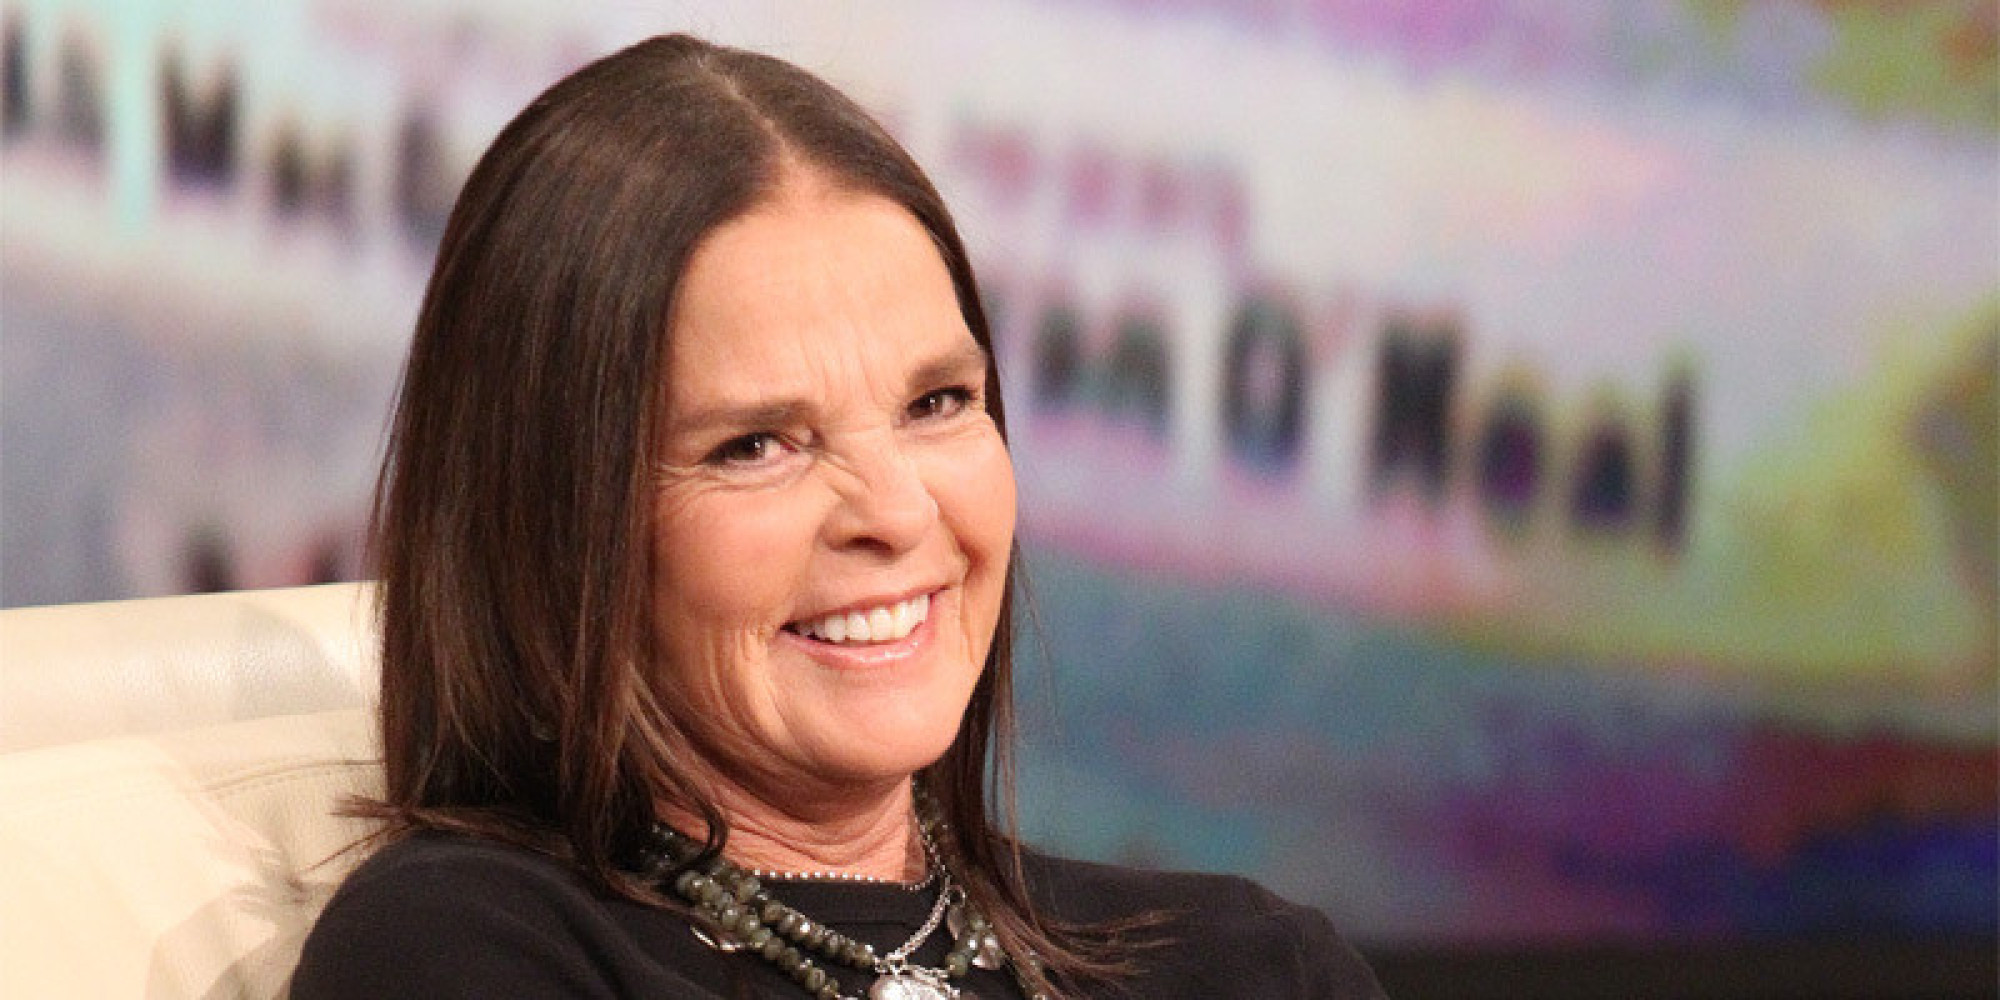 Ali MacGraw On Embracing Her Natural Gray Hair: 'About